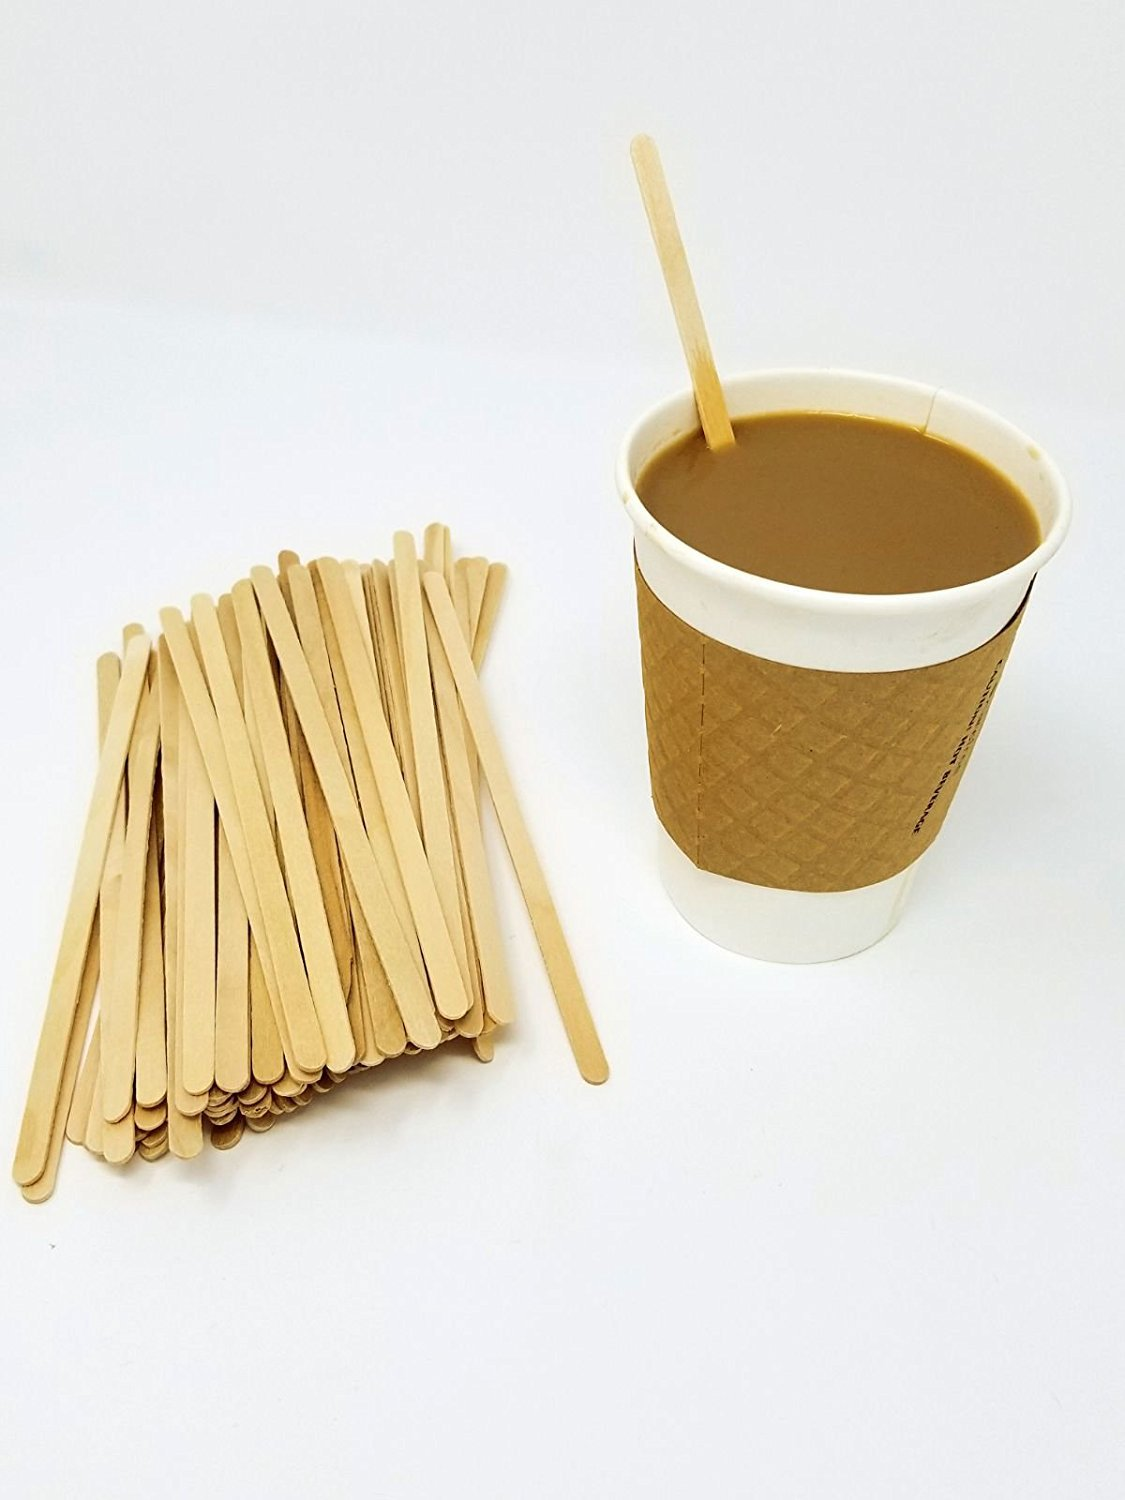 Wood Coffee Stirrers, Stir Sticks for Tea & Hot or Cold Beverages, Biodegradable, 7-Inch (1000 Count) by eDayDeal HomeGoods (10 Pack - 10,000)